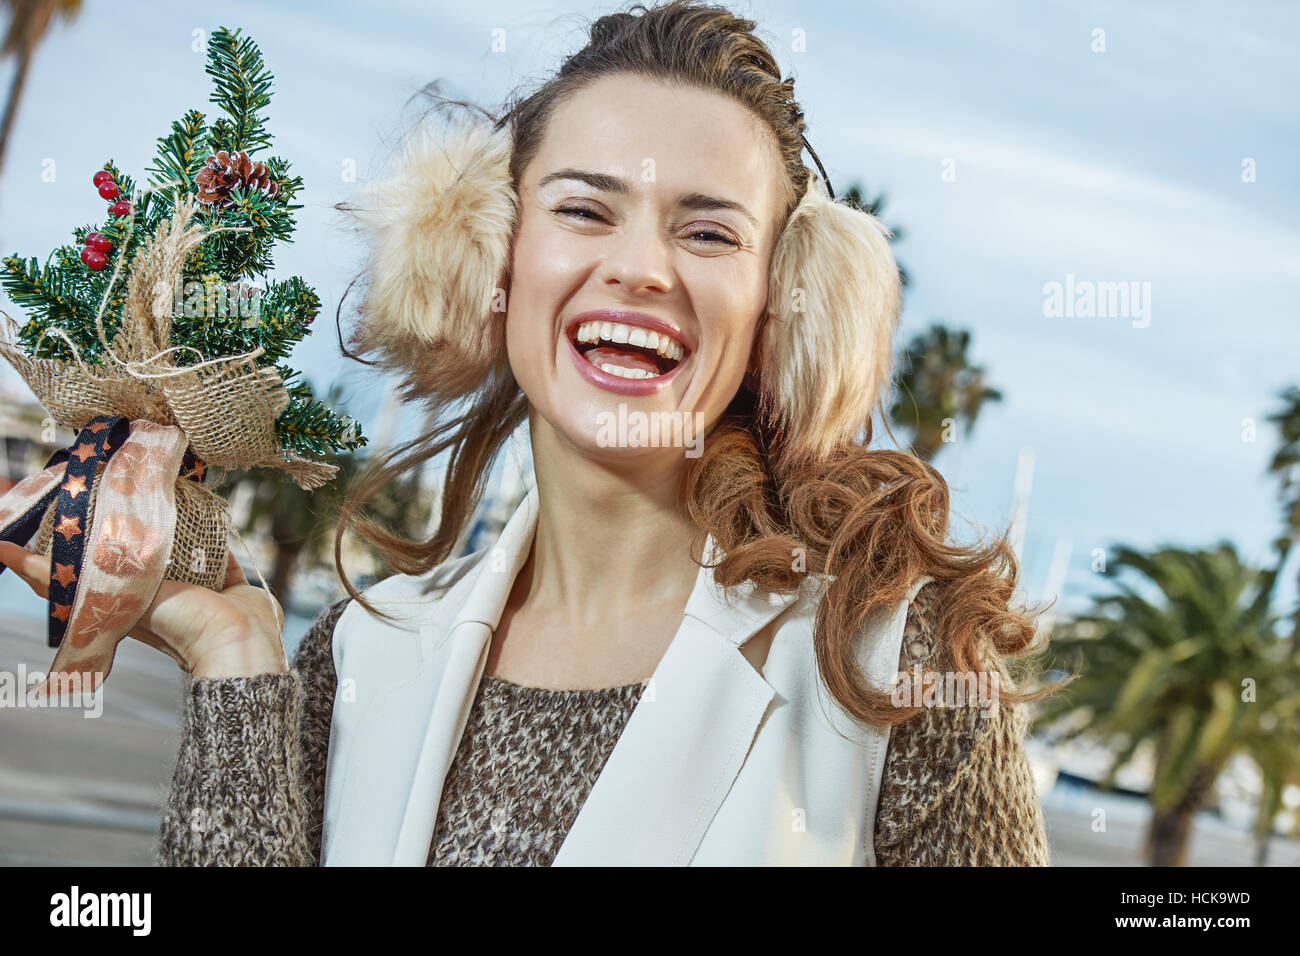 in Barcelona for a perfect winter. happy young woman in earmuffs in Barcelona, Spain showing little Christmas tree - Stock Image